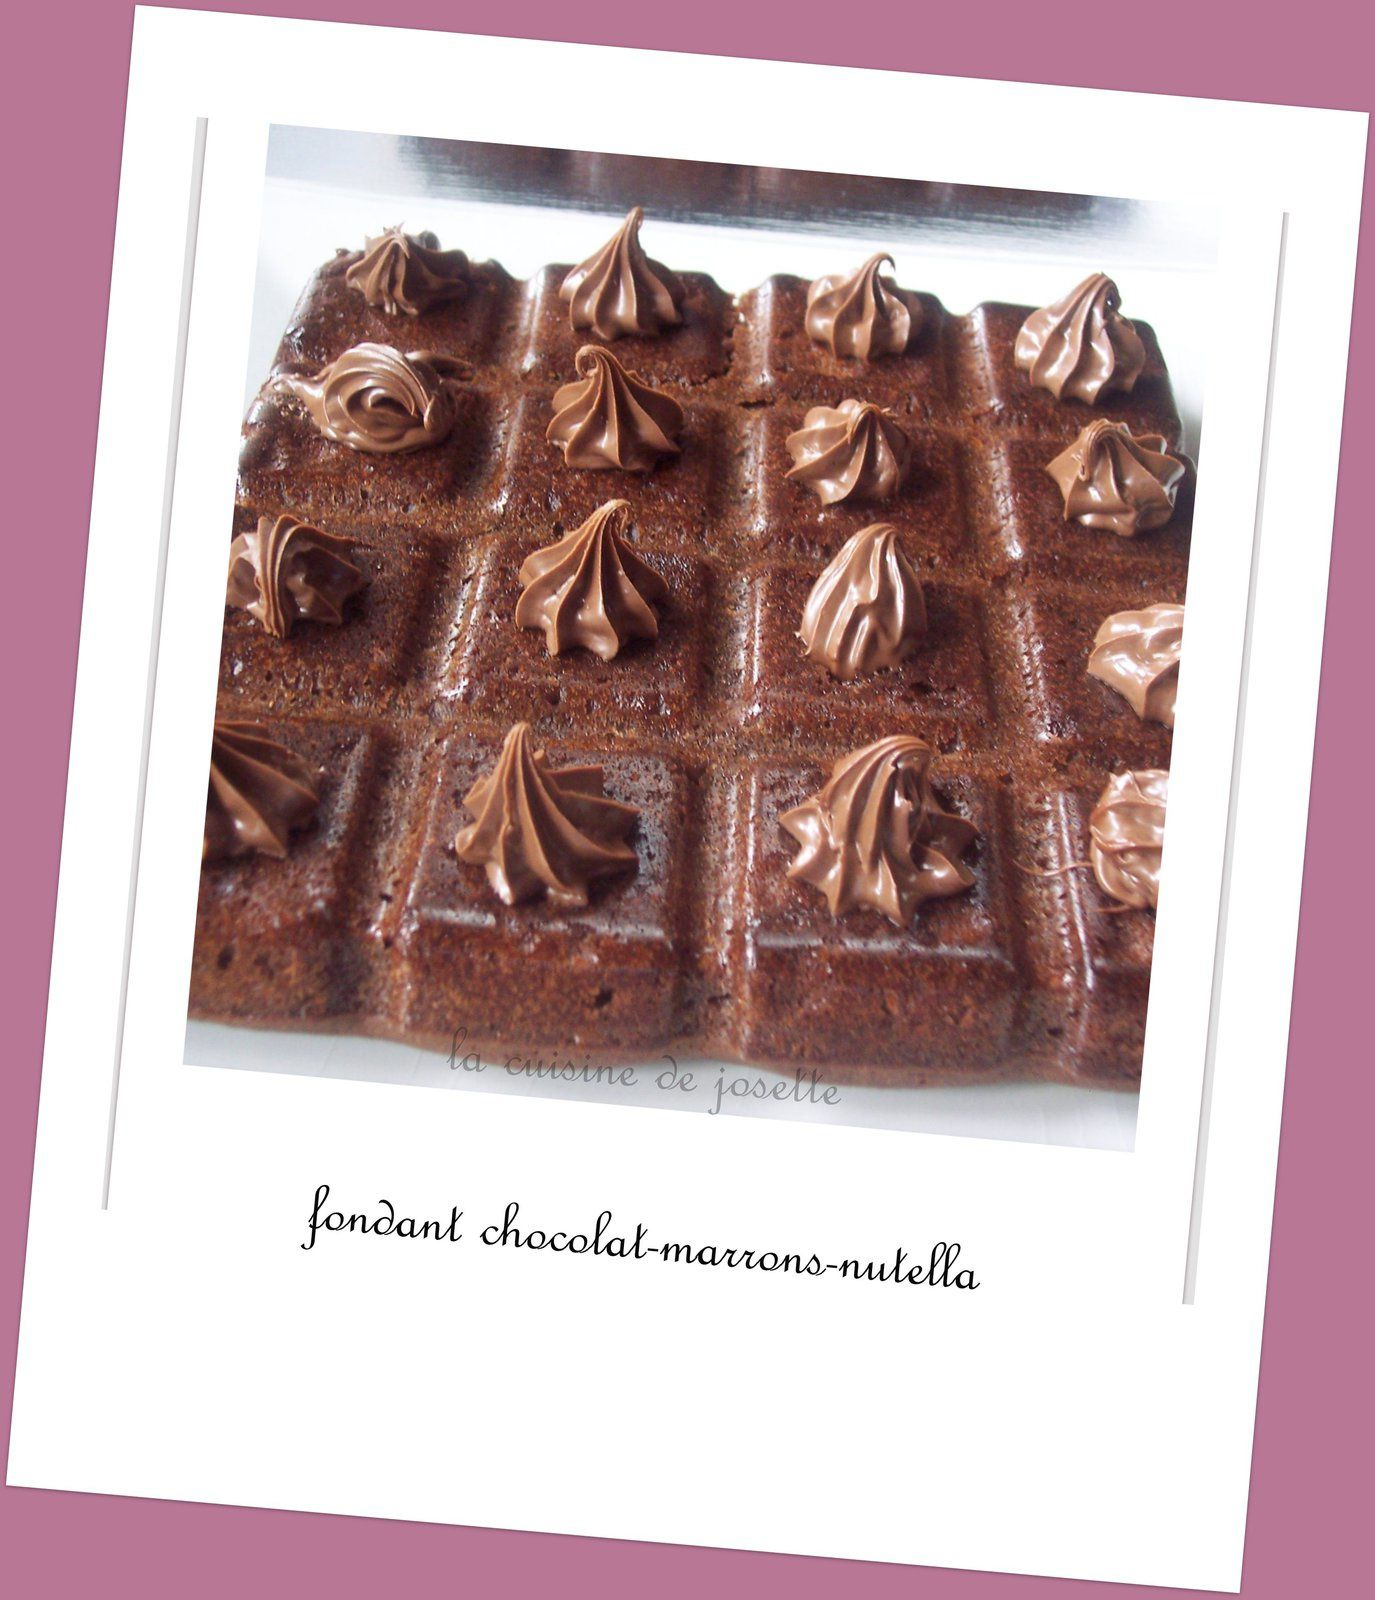 fondant facile au chocolat-marrons-nutella